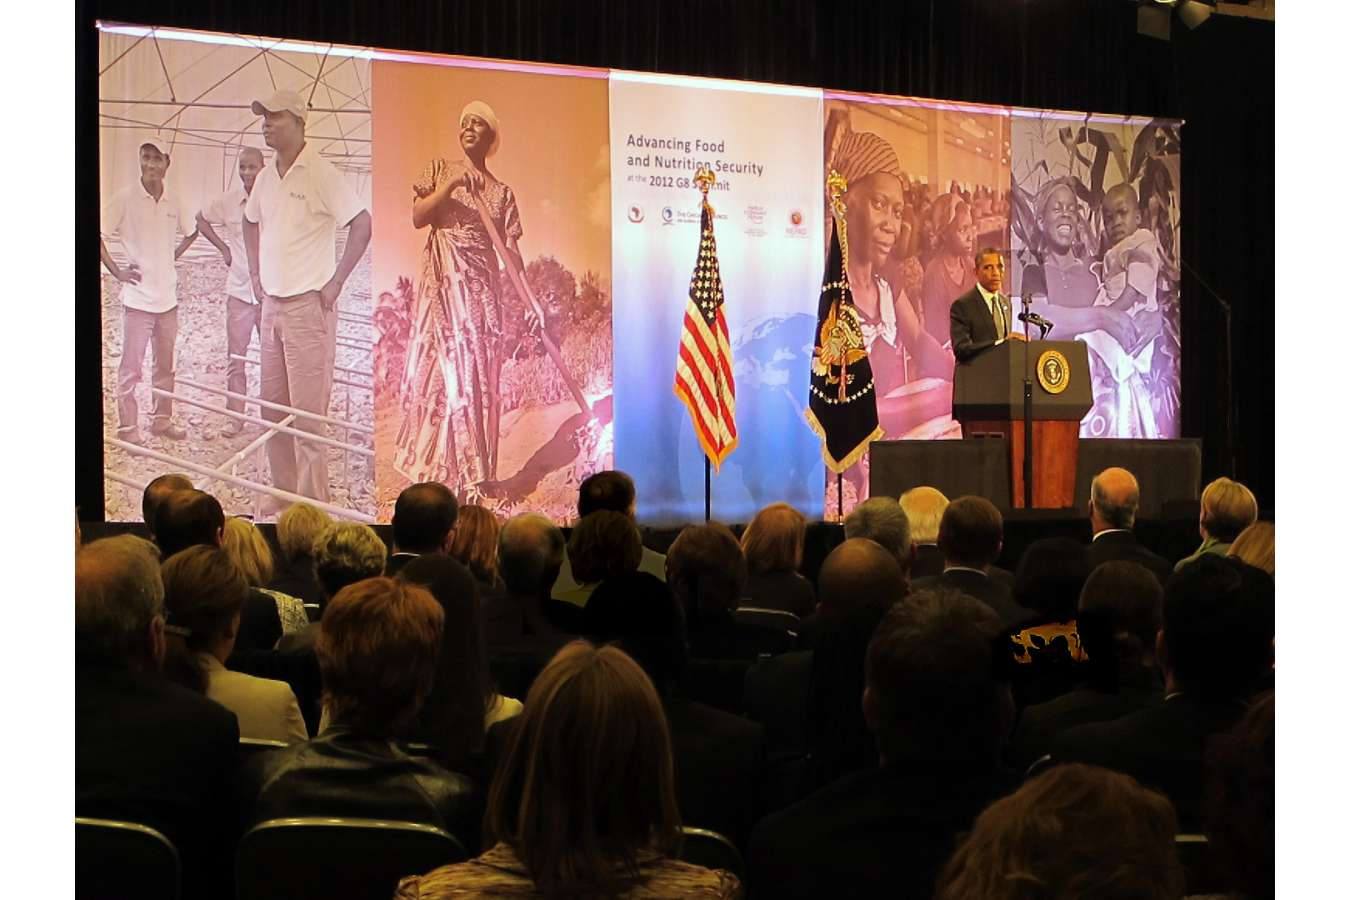 ccg8_2_obama_speech : Food Security symposium led by world leaders in government and private industry